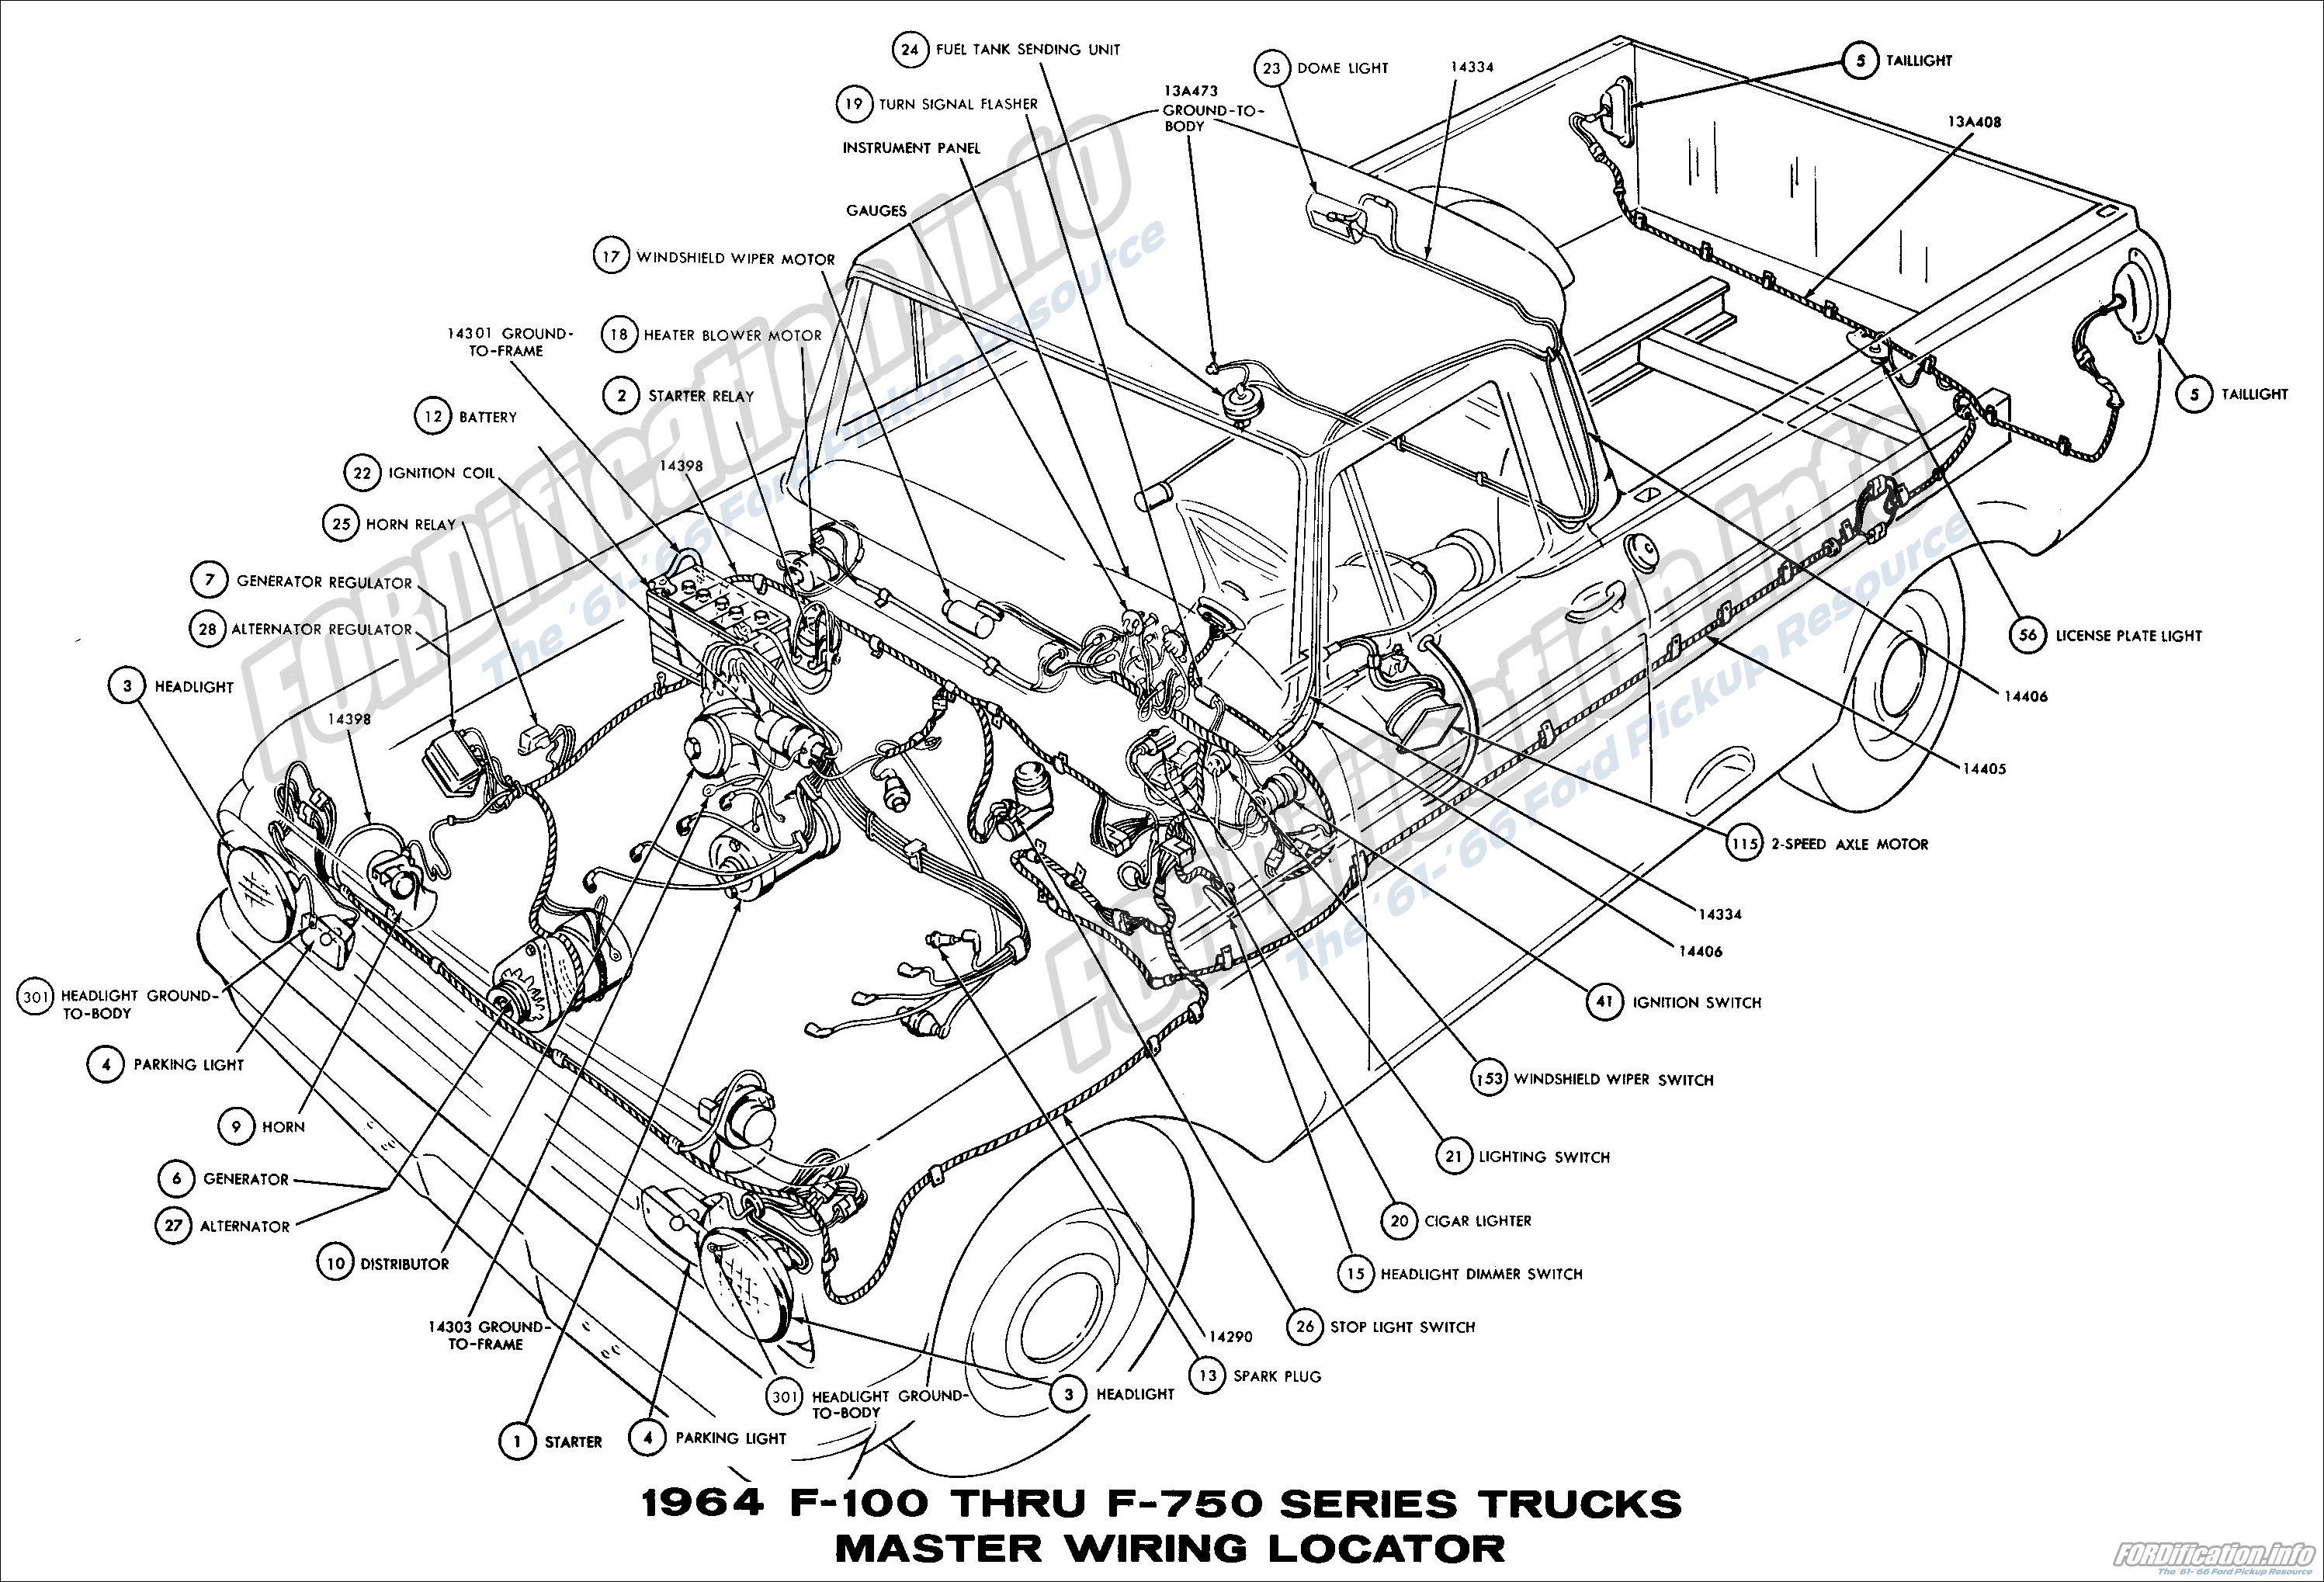 [DIAGRAM_1CA]  1964 Ford Truck Wiring Diagrams - FORDification.info - The '61-'66 Ford  Pickup Resource | 1966 Ford F100 Engine Wiring Diagram Free Picture |  | FORDification.info